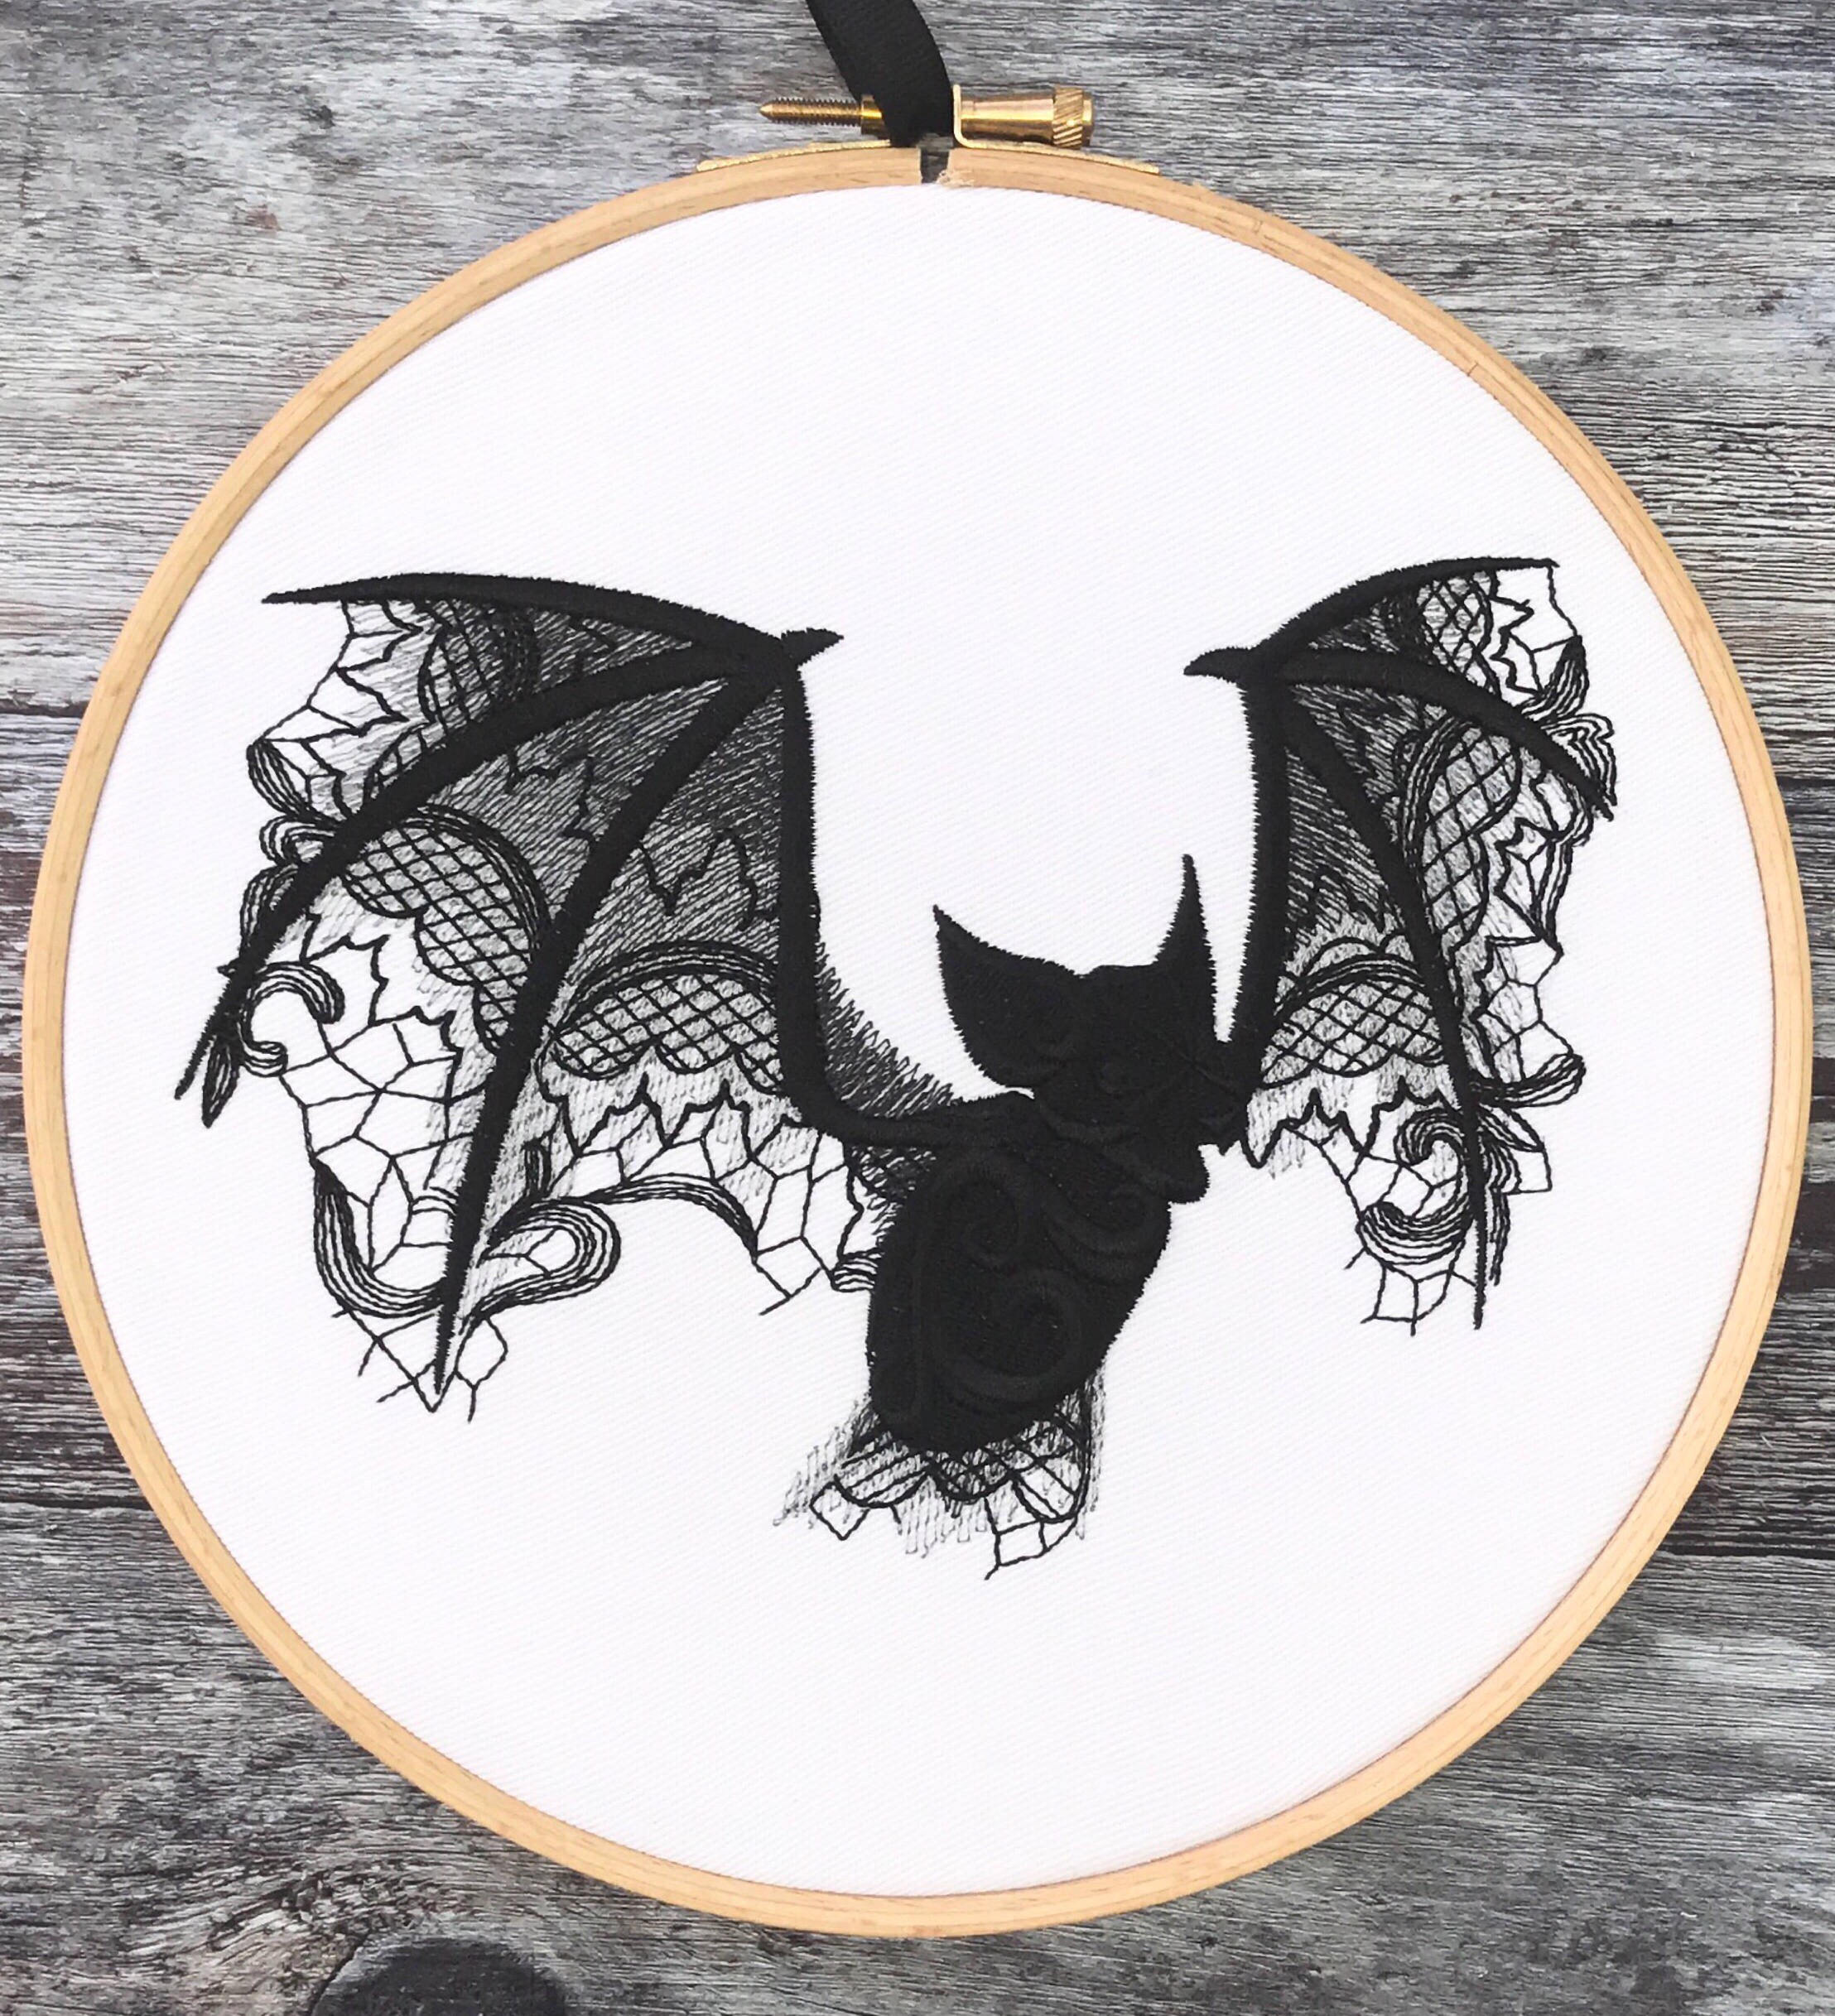 Bat black lace, Embroidery hoop art